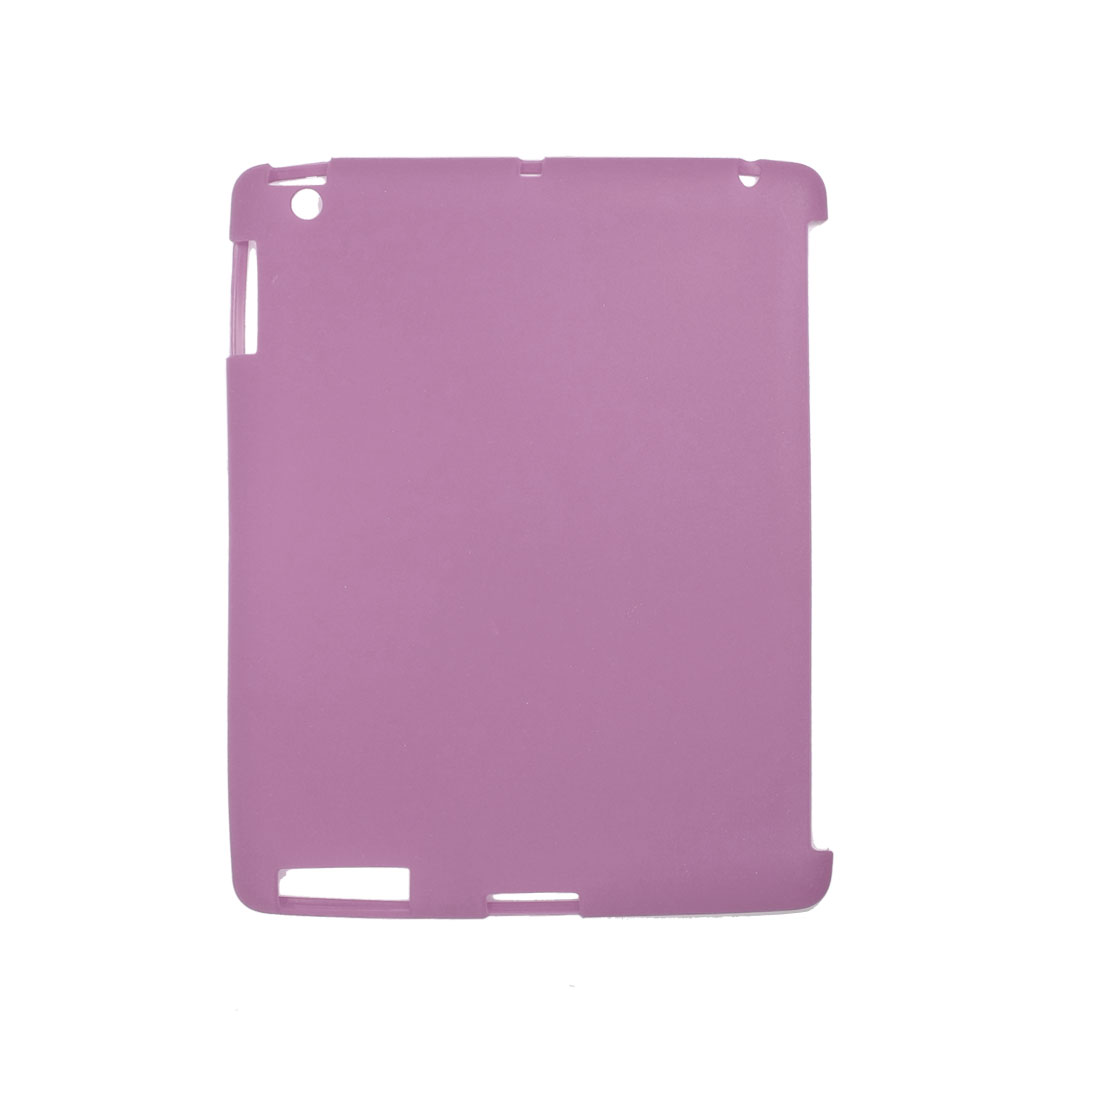 Soft Plastic Dark Pink Protecting Case for Apple iPad 2G 3G - image 1 of 1